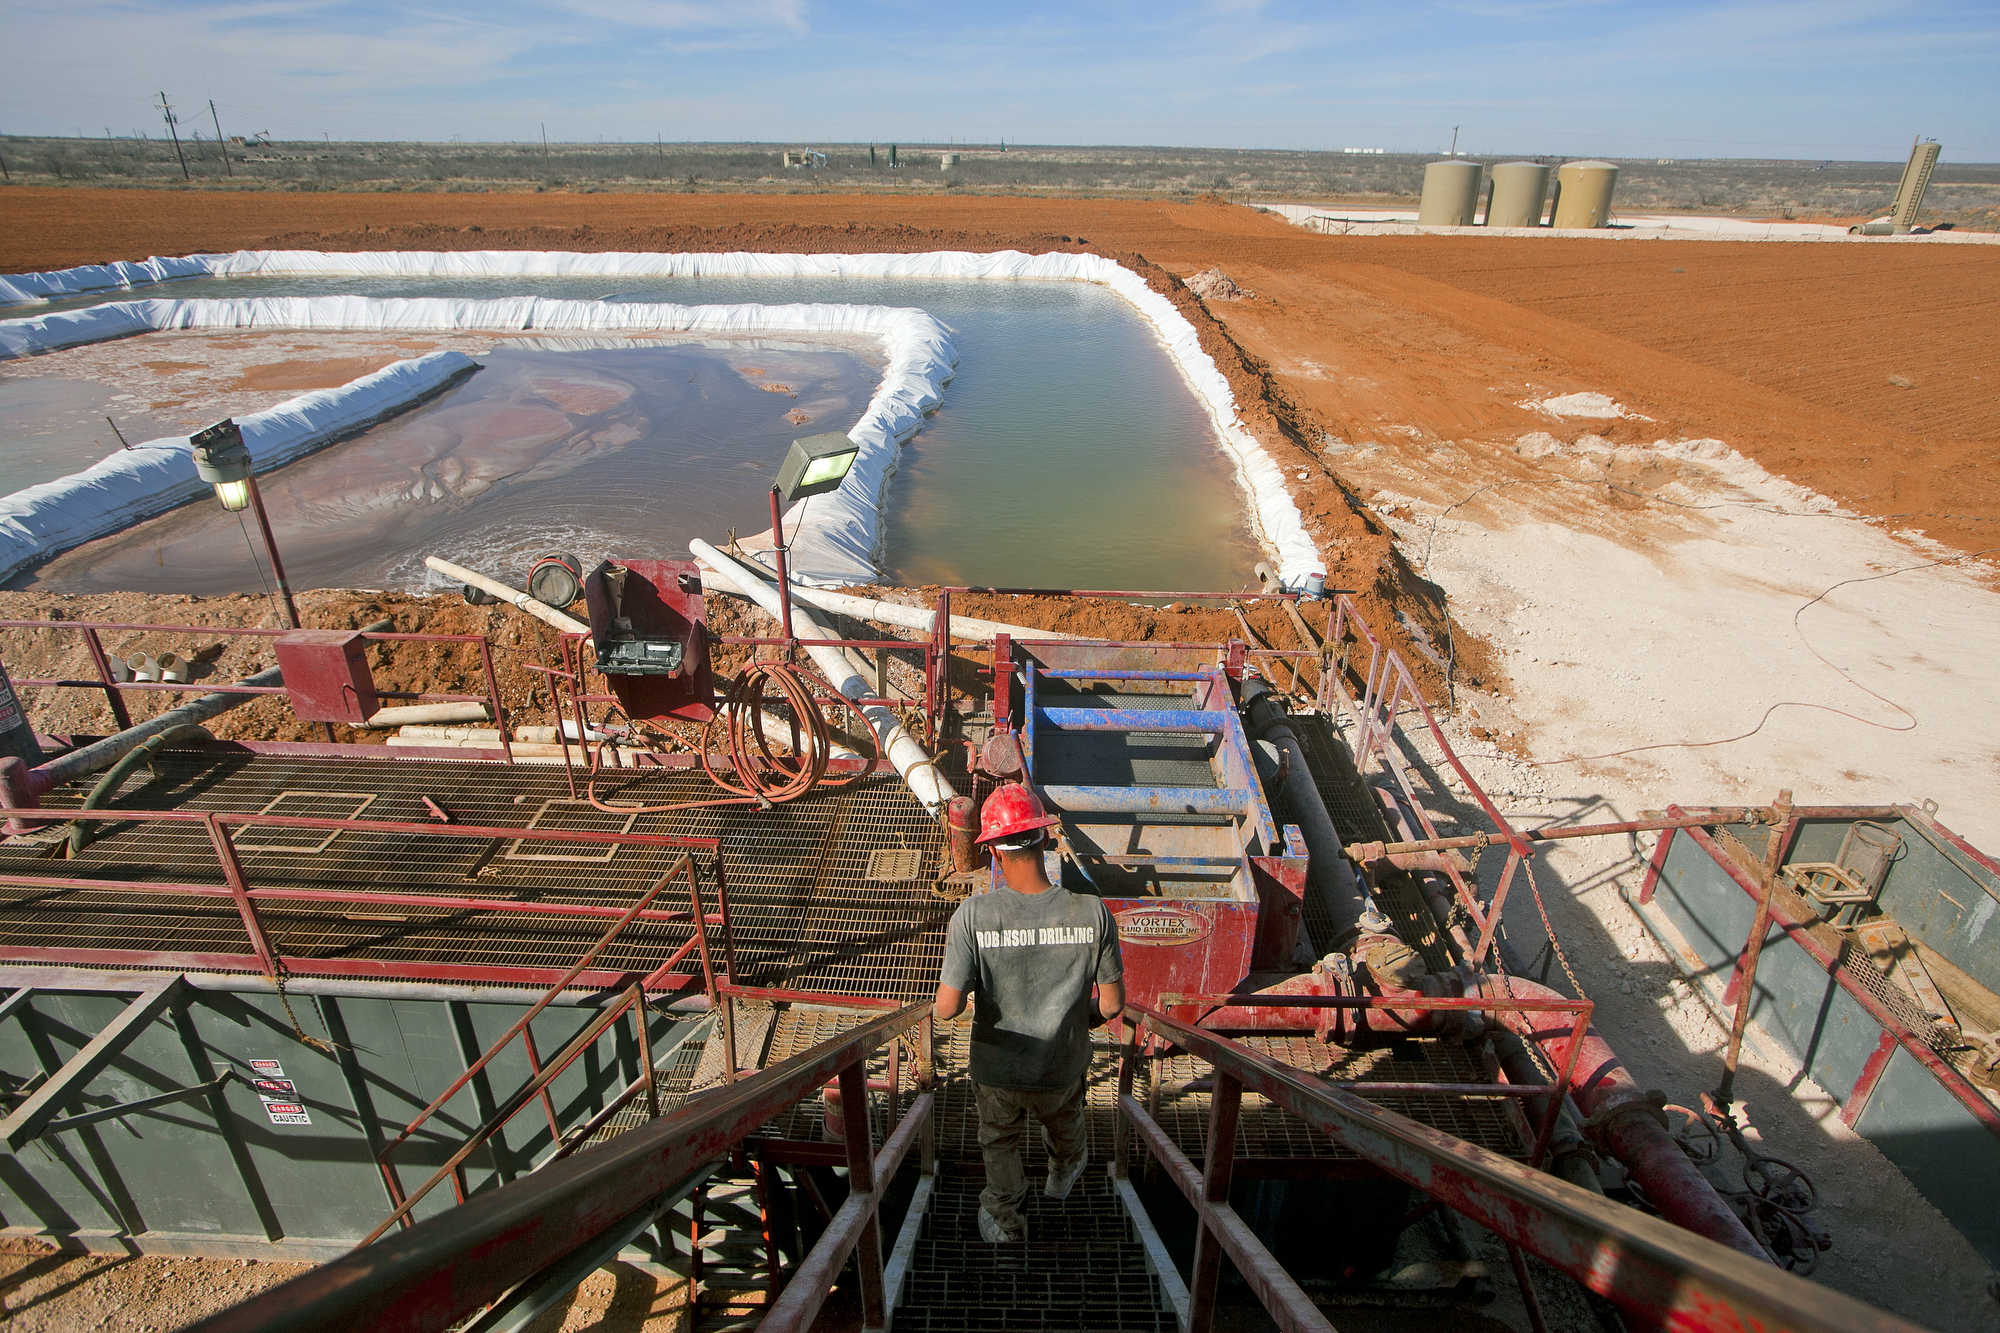 Oil industry is slowly finding a use for its wastewater